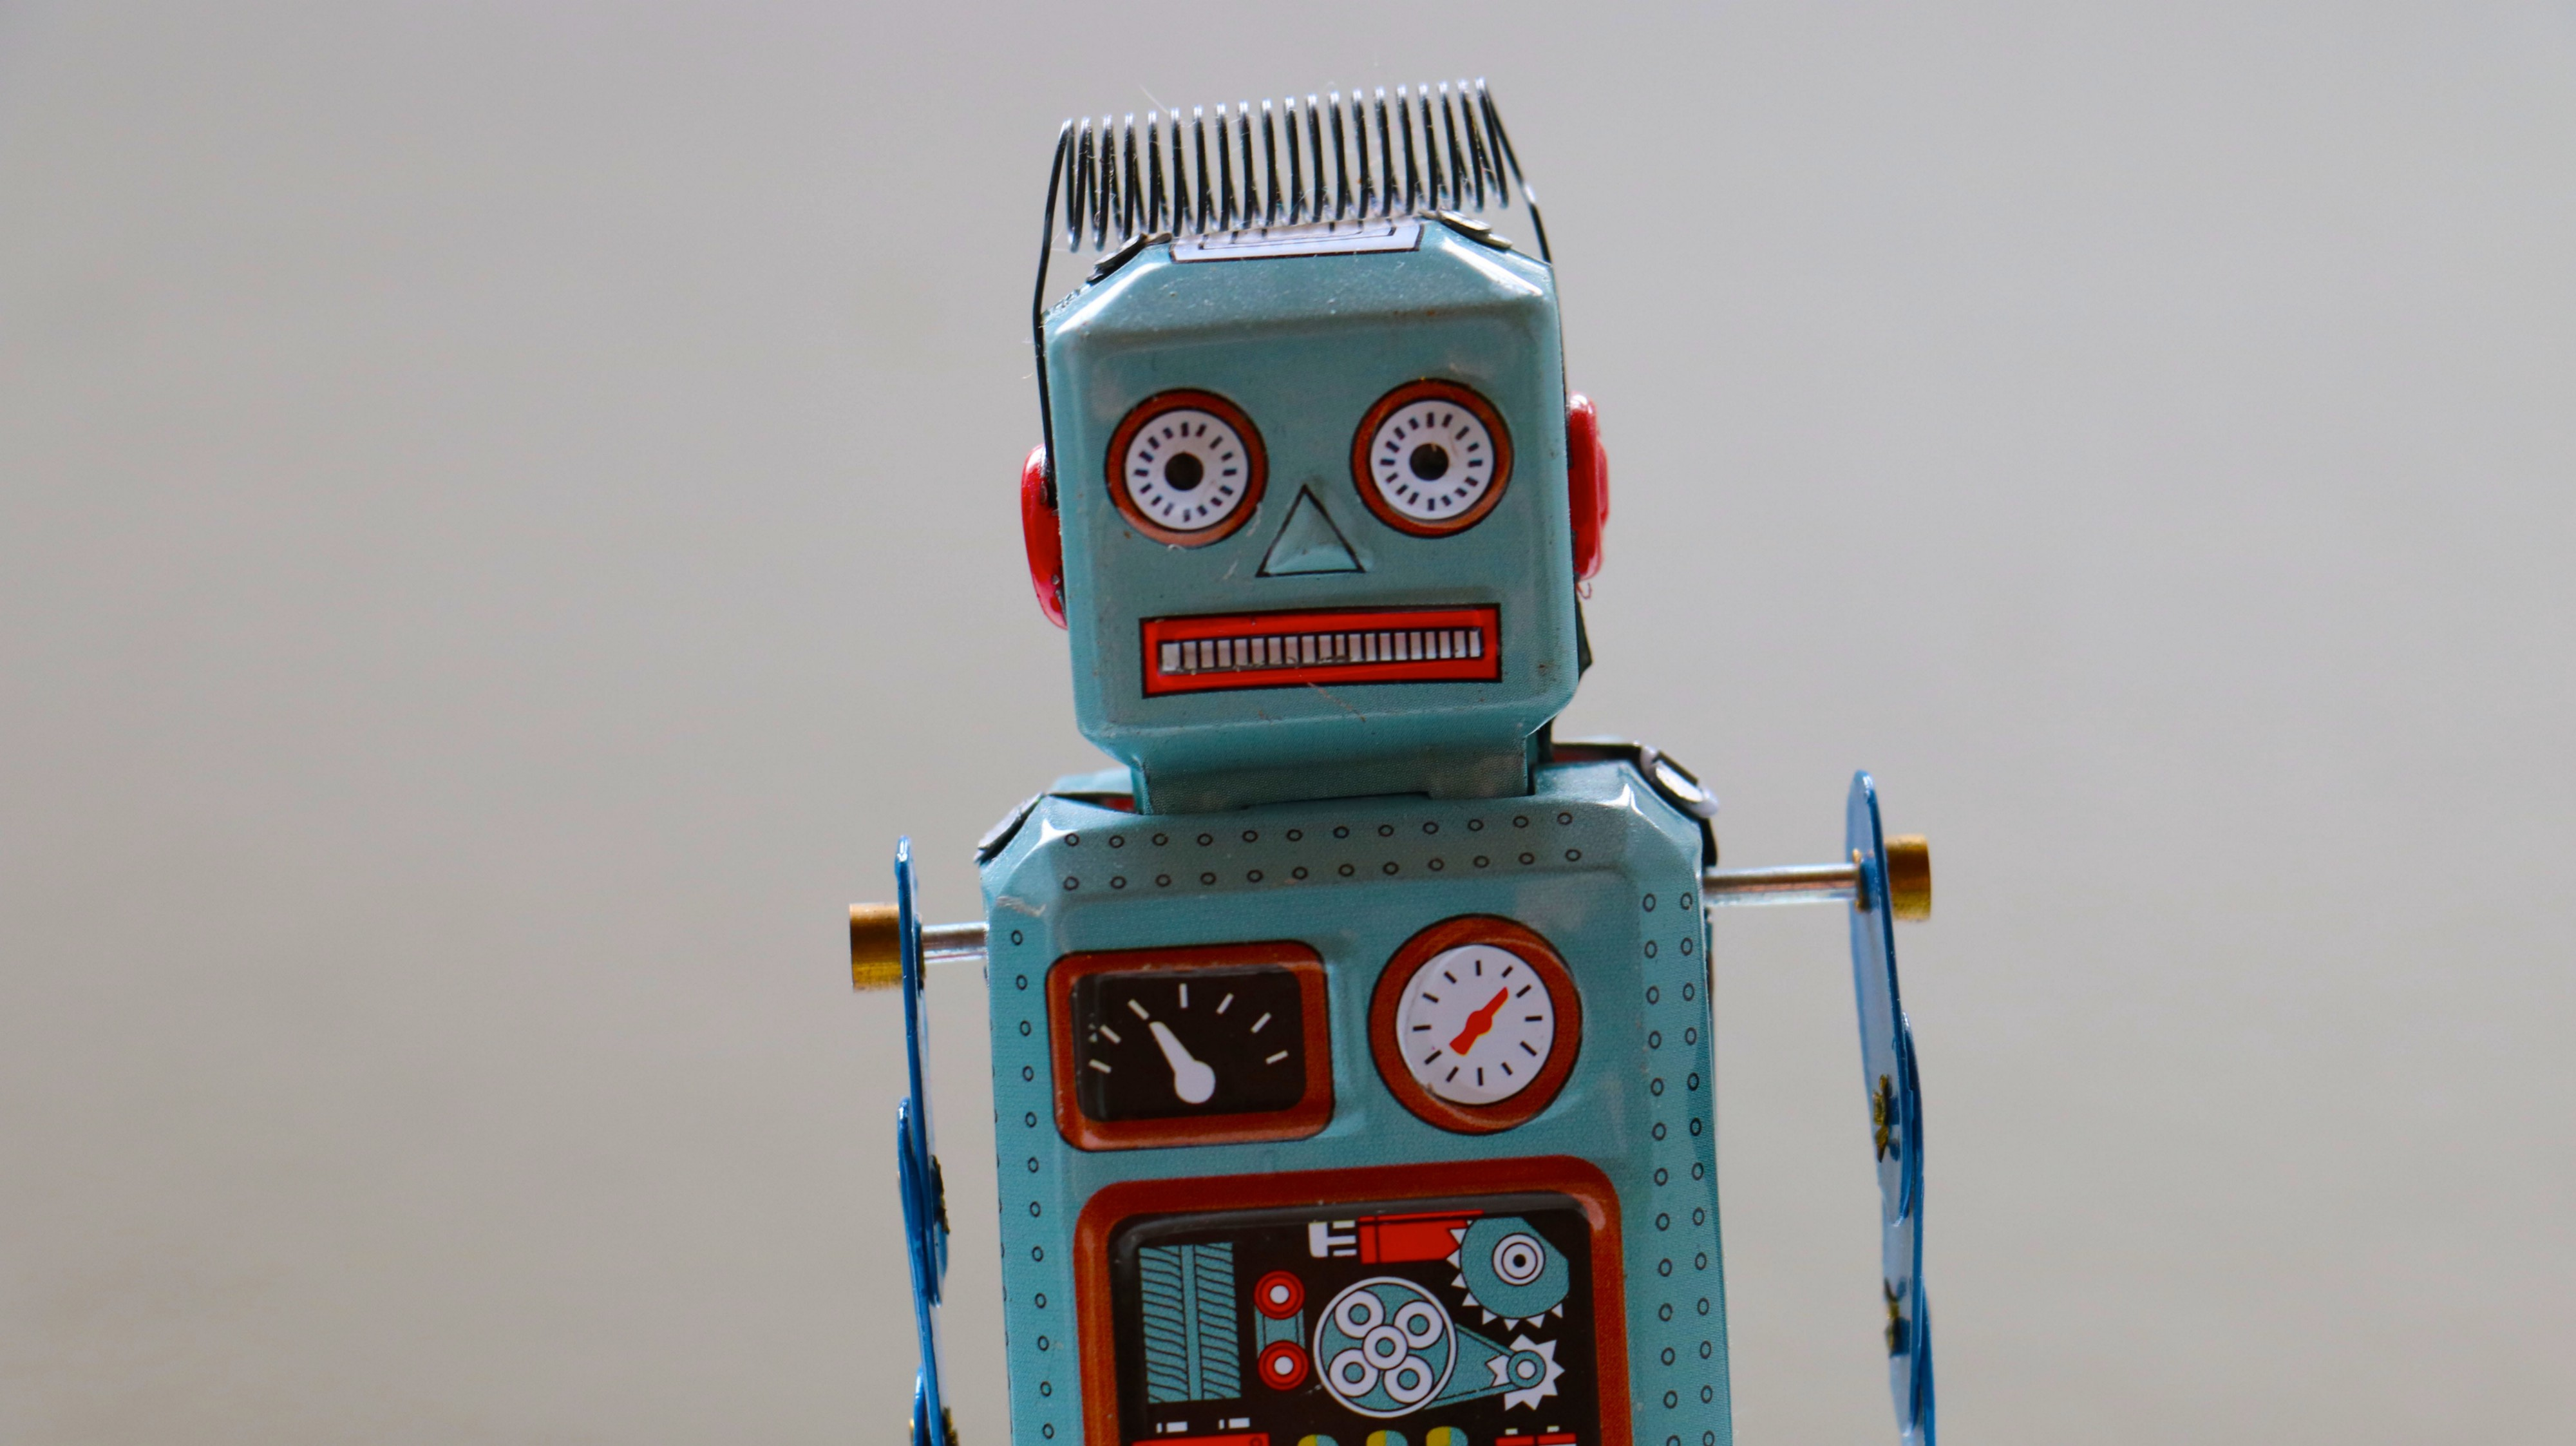 A photo of a blue toy robot.